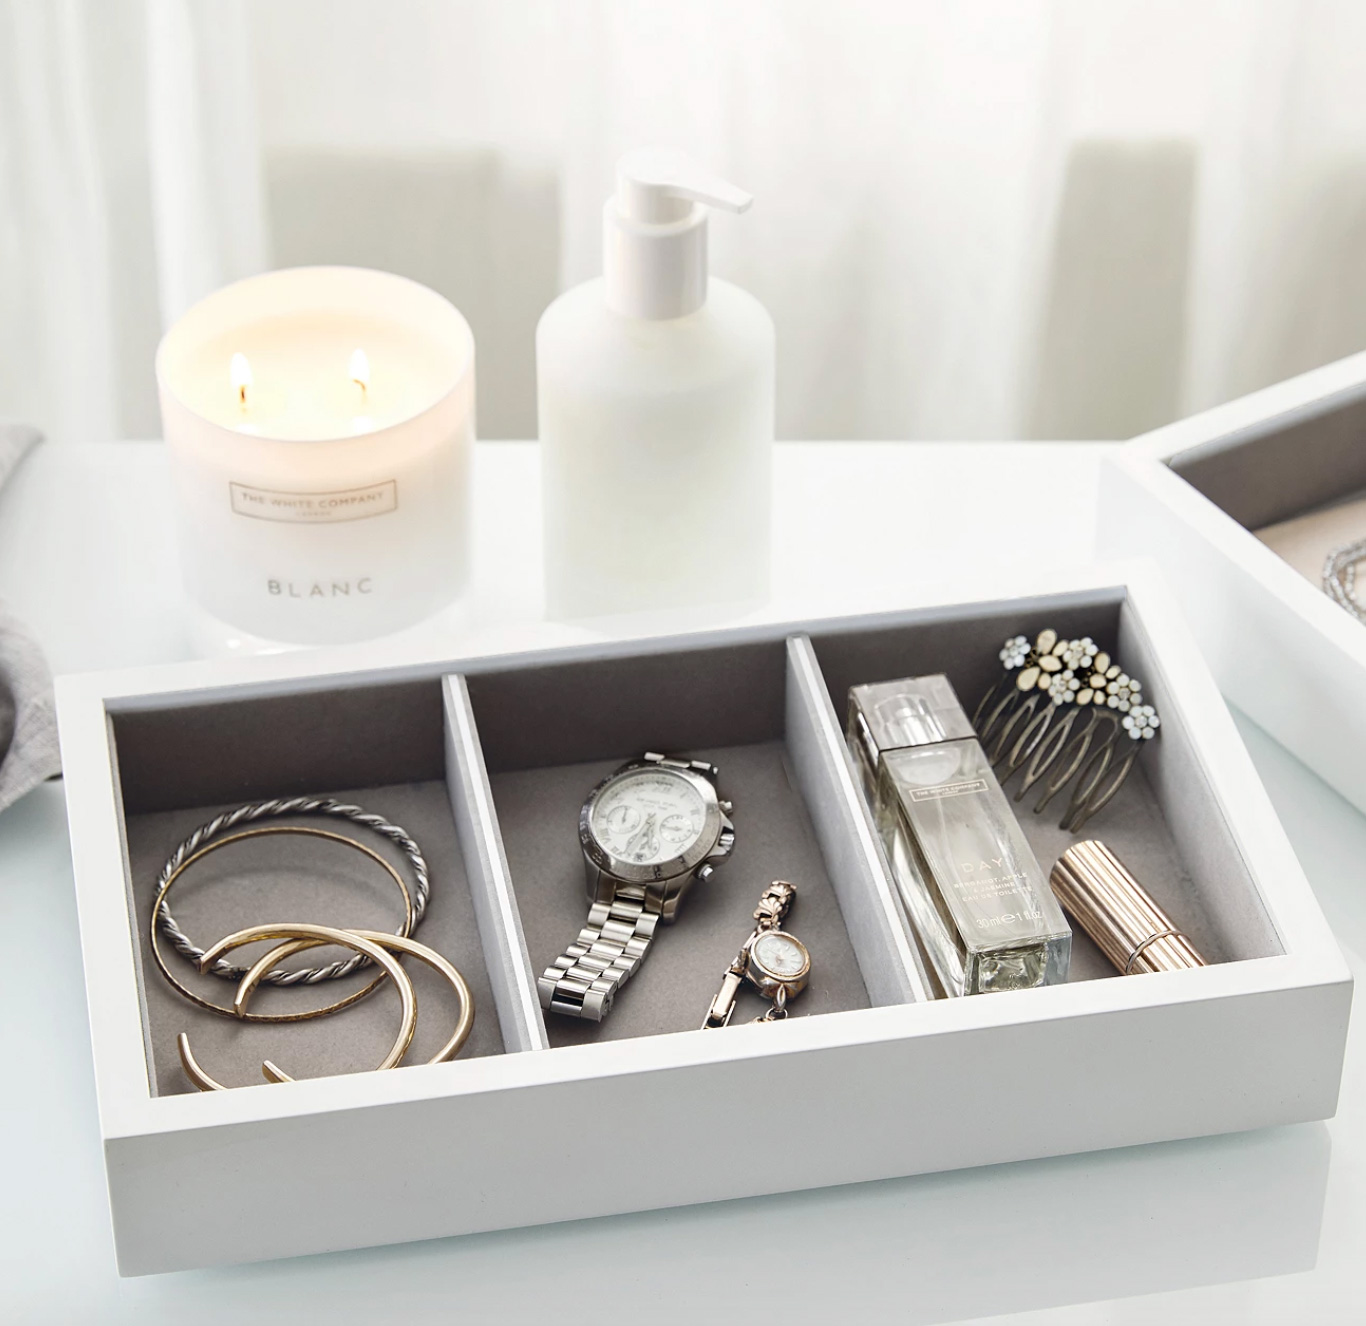 white box tray with three compartments